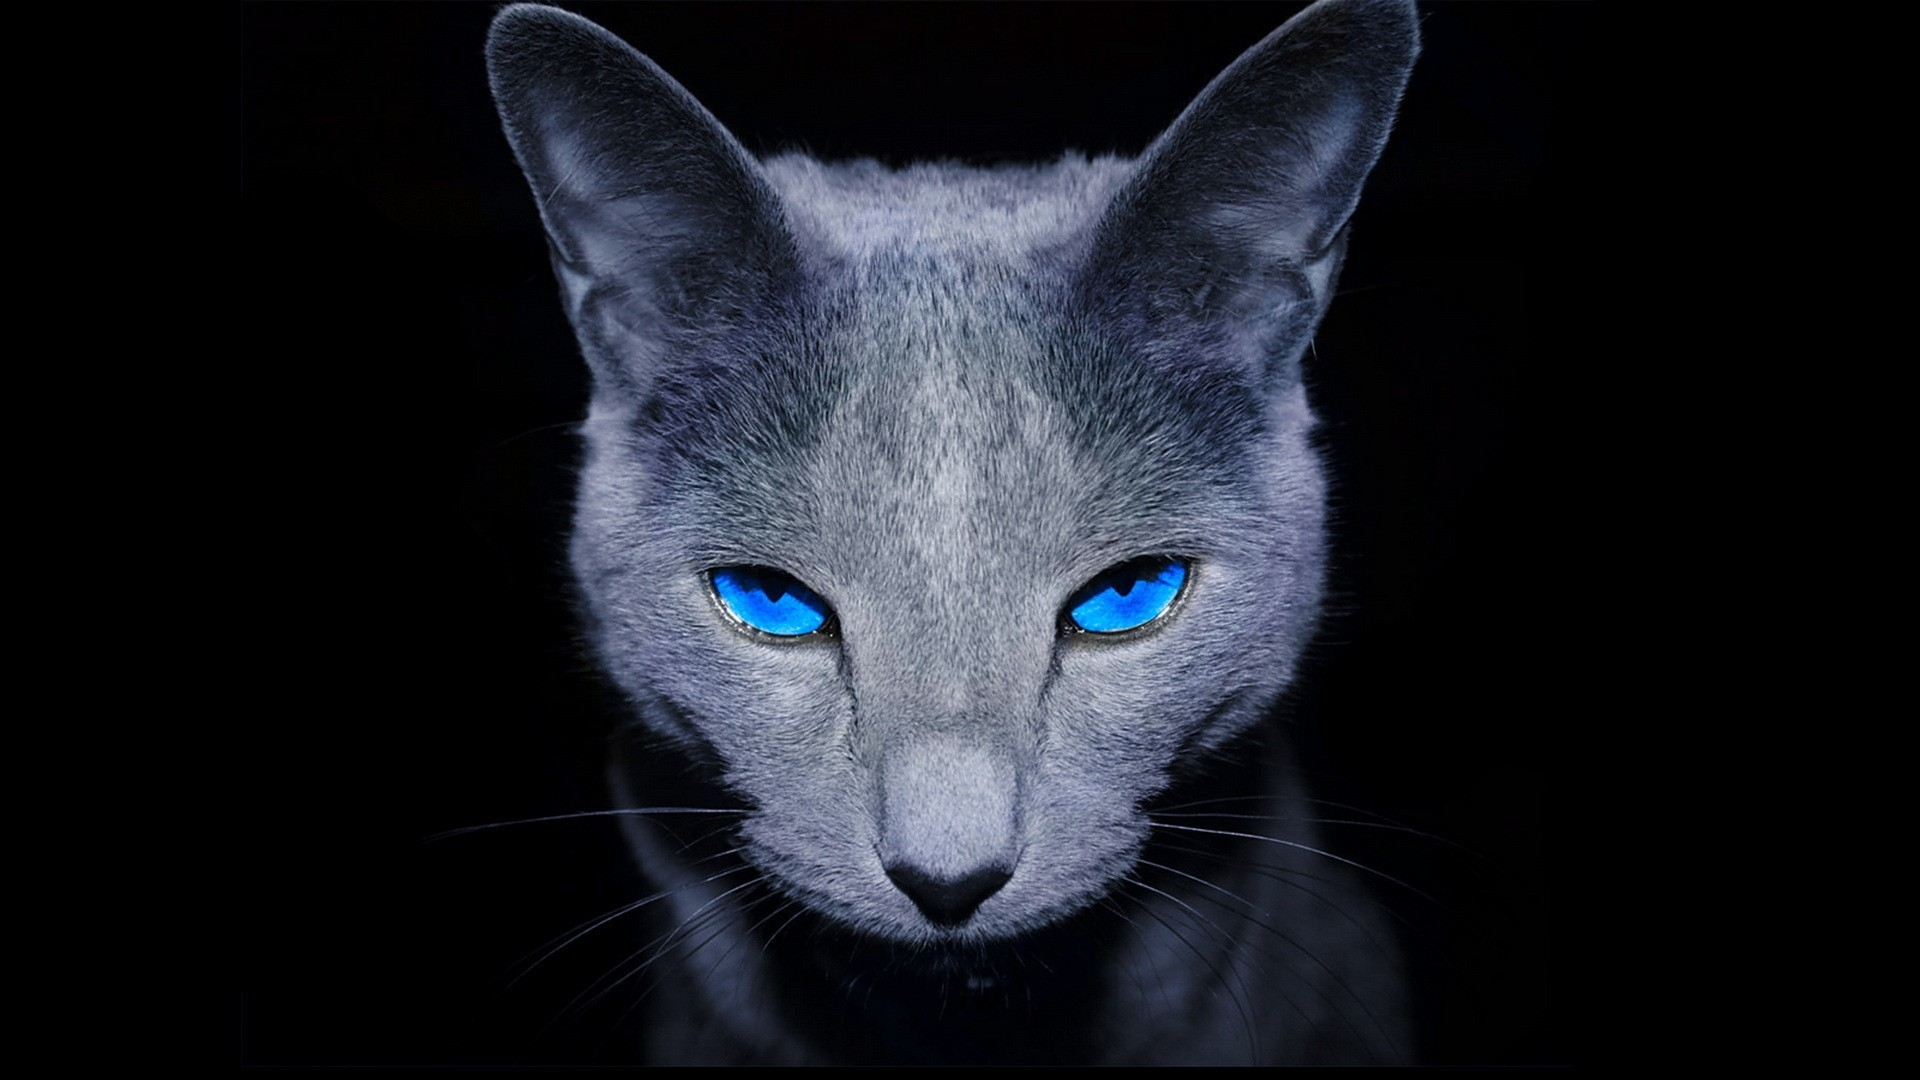 Res: 1920x1080, Black-animal-wallpaper-with-dark-gray-cat-with-blue-eyes.jpg